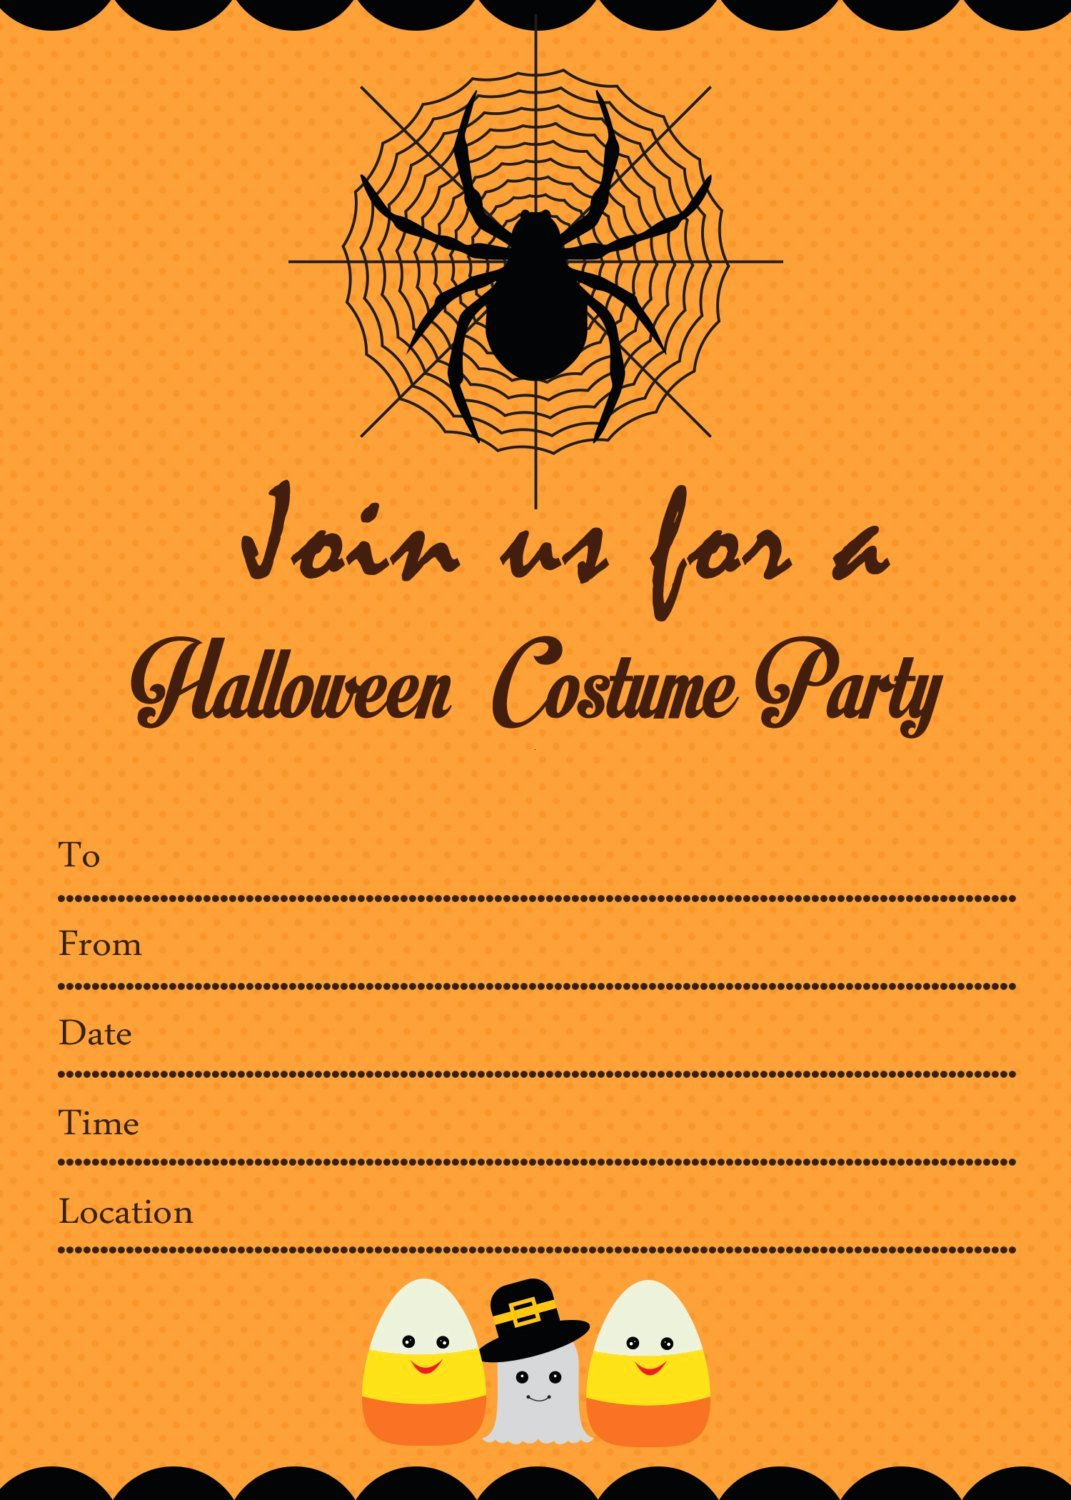 Spooky Halloween Costume Party Invitation by Candybeedesigns